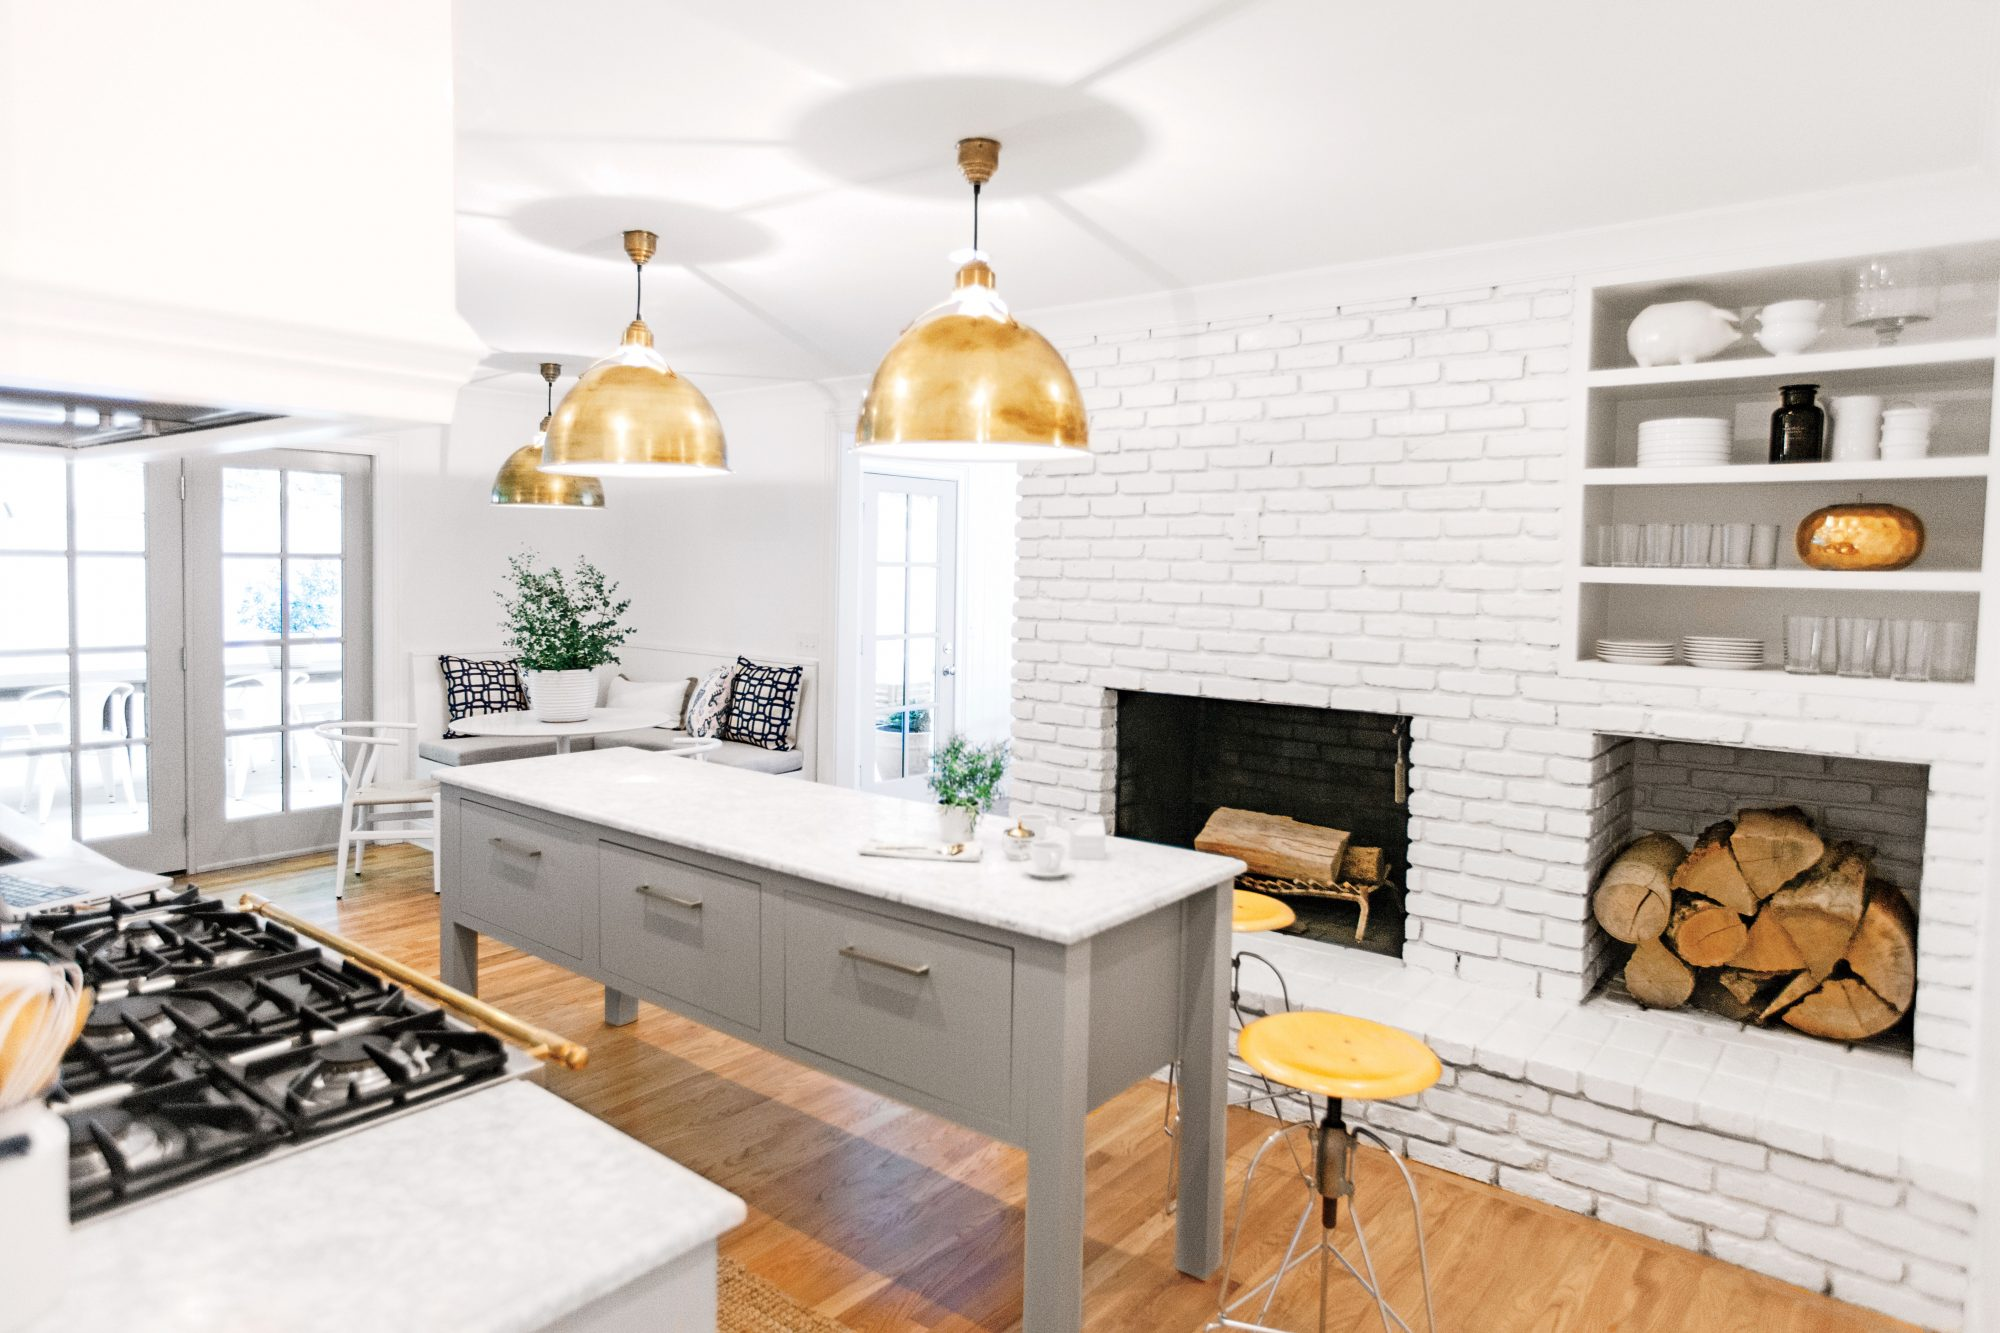 Kitchen with Brass Circa Lighting pendants and Schoolhouse Electric hardware